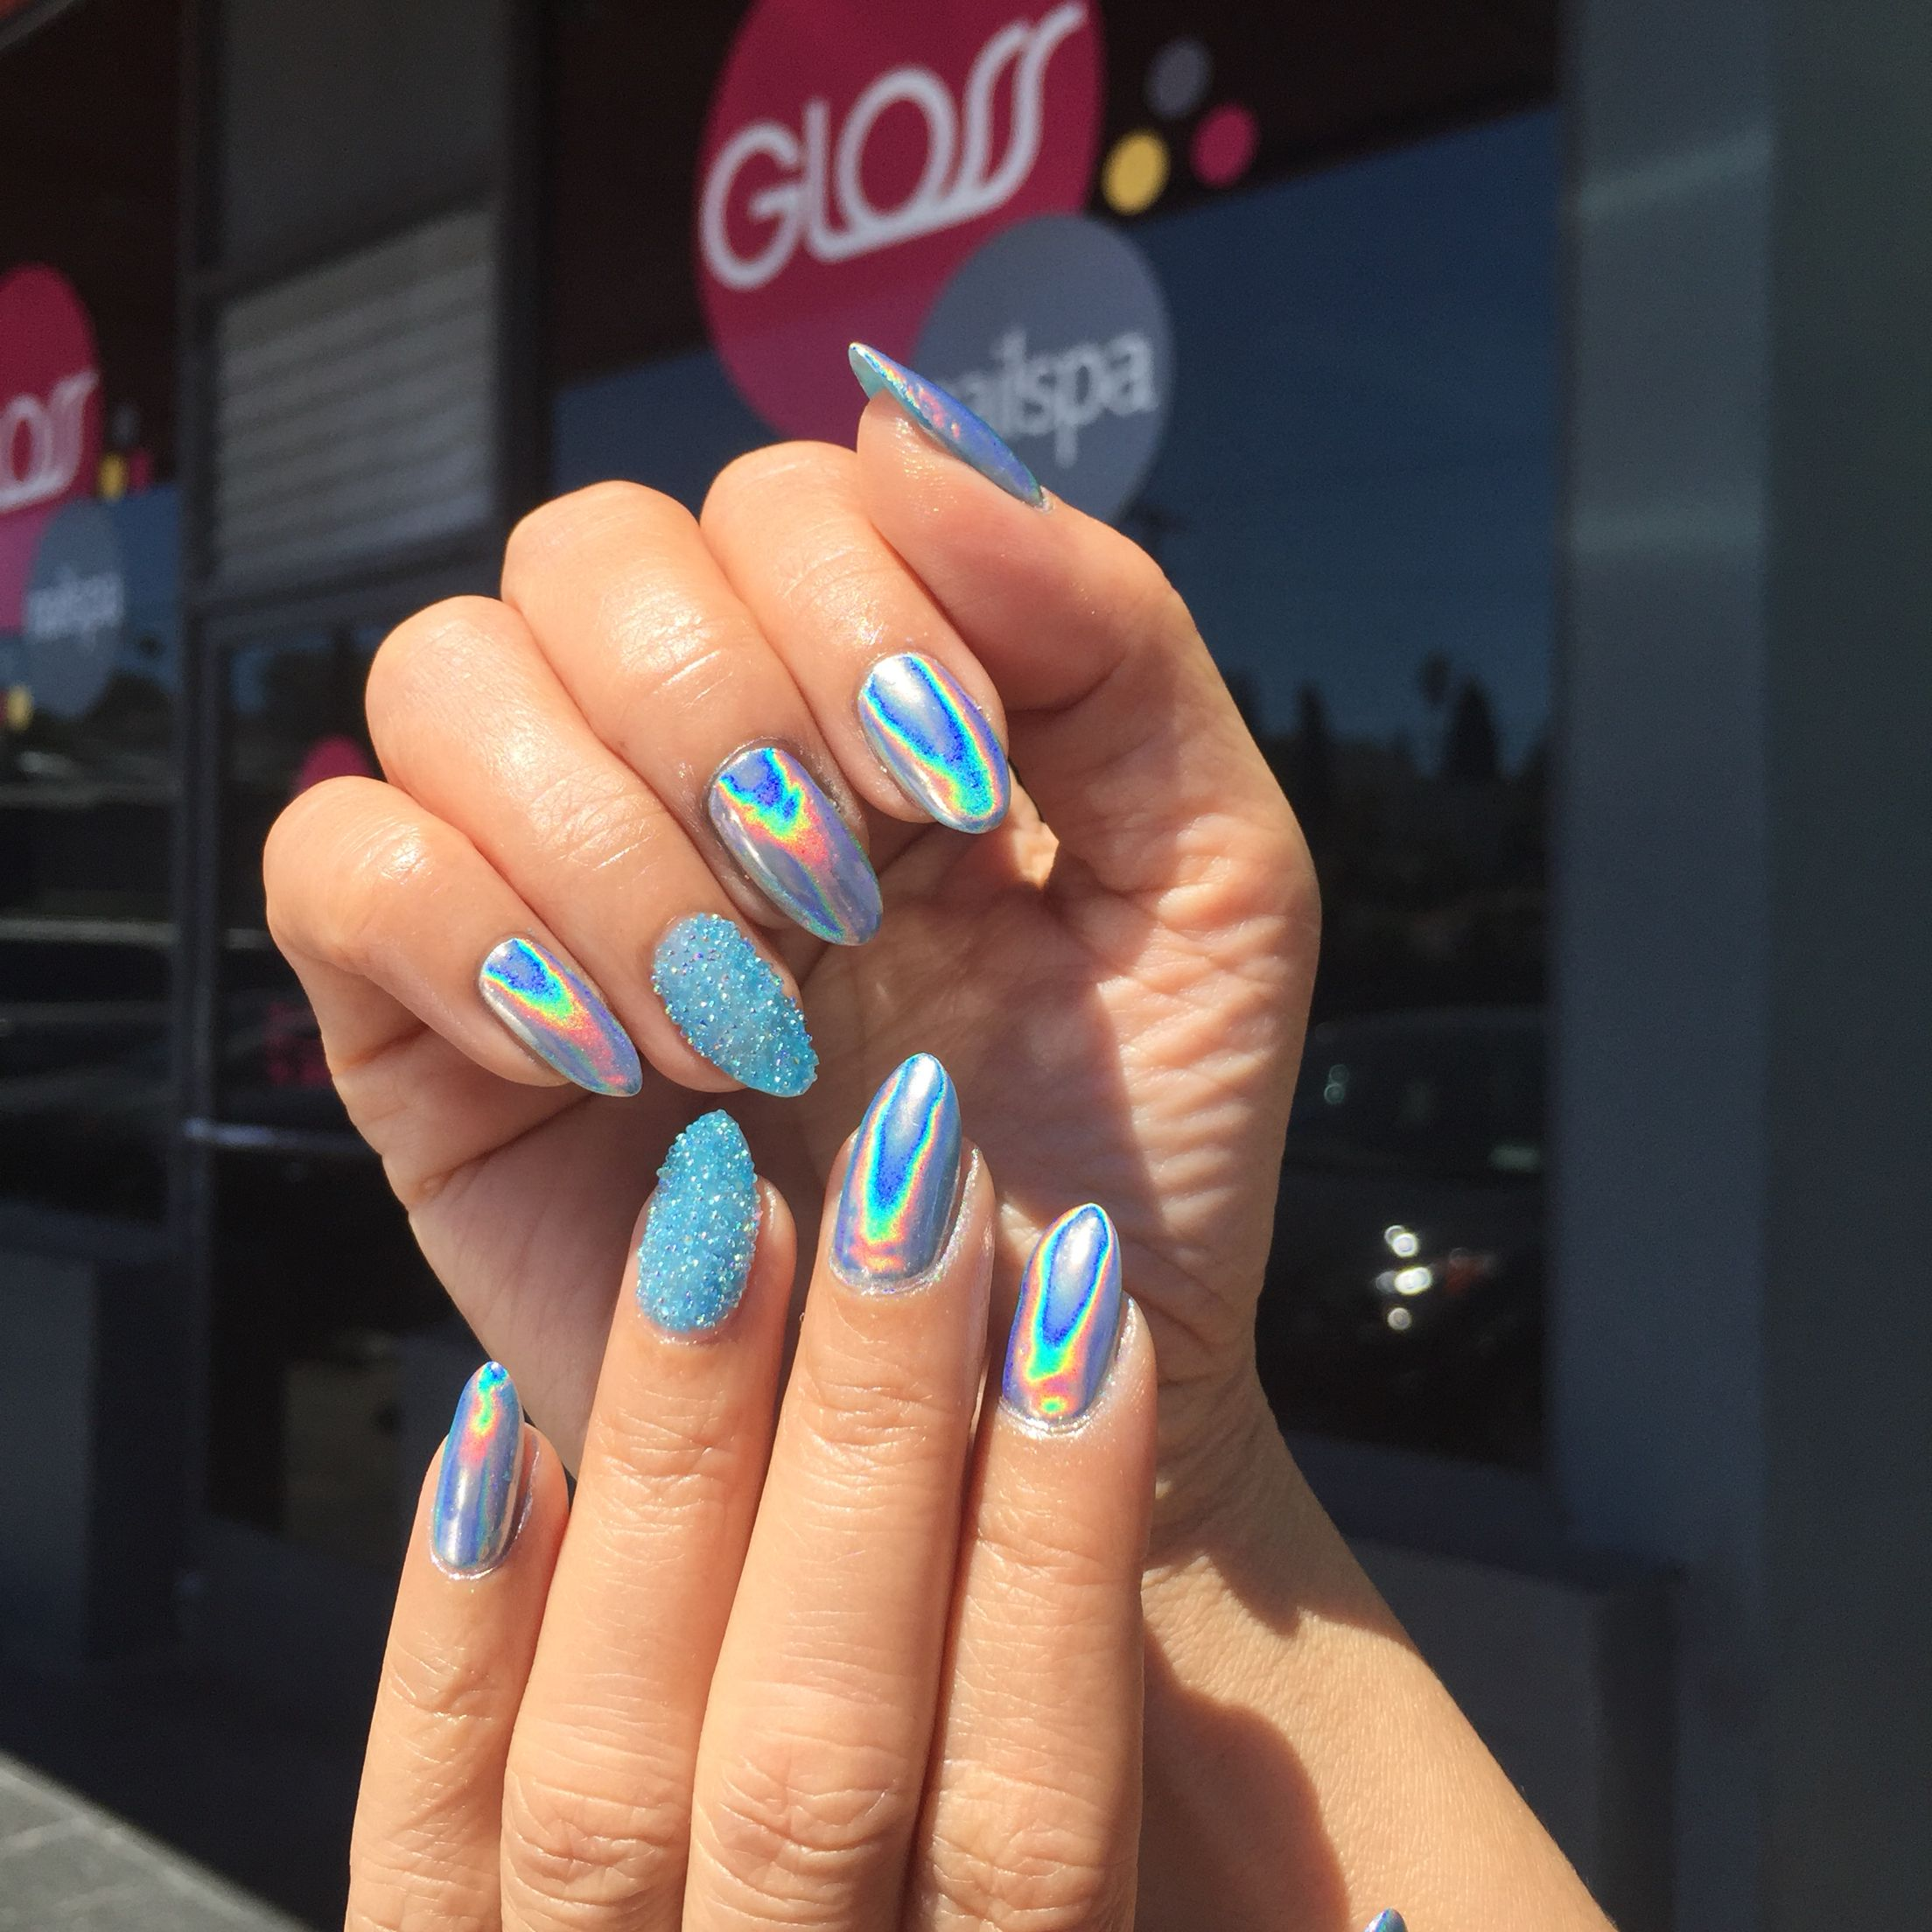 Blue glitter ombr 233 stiletto nails - Pinterest Pmooose